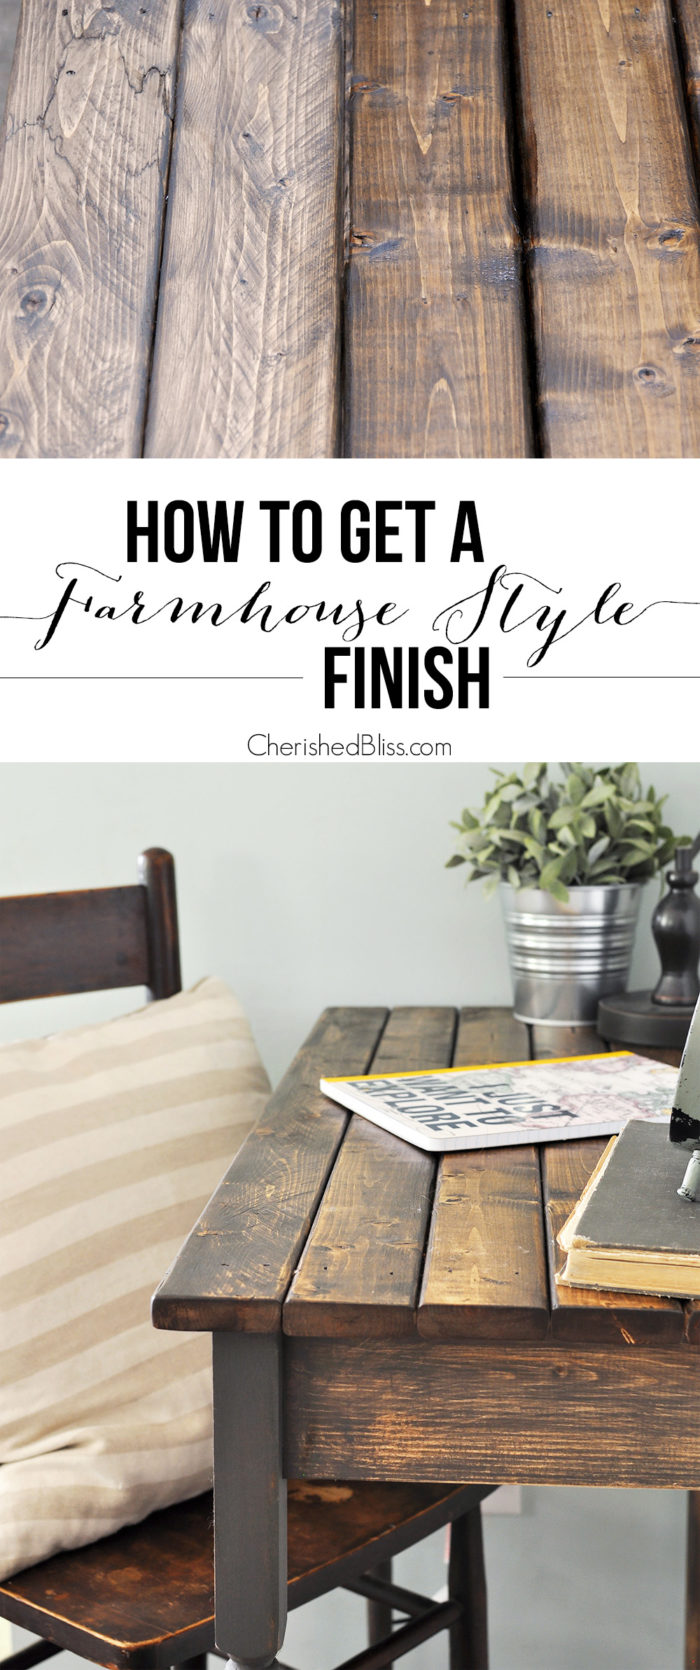 Diy Farmhouse Style Desk How To Get A Farmhouse Style Finish Cherished Bliss